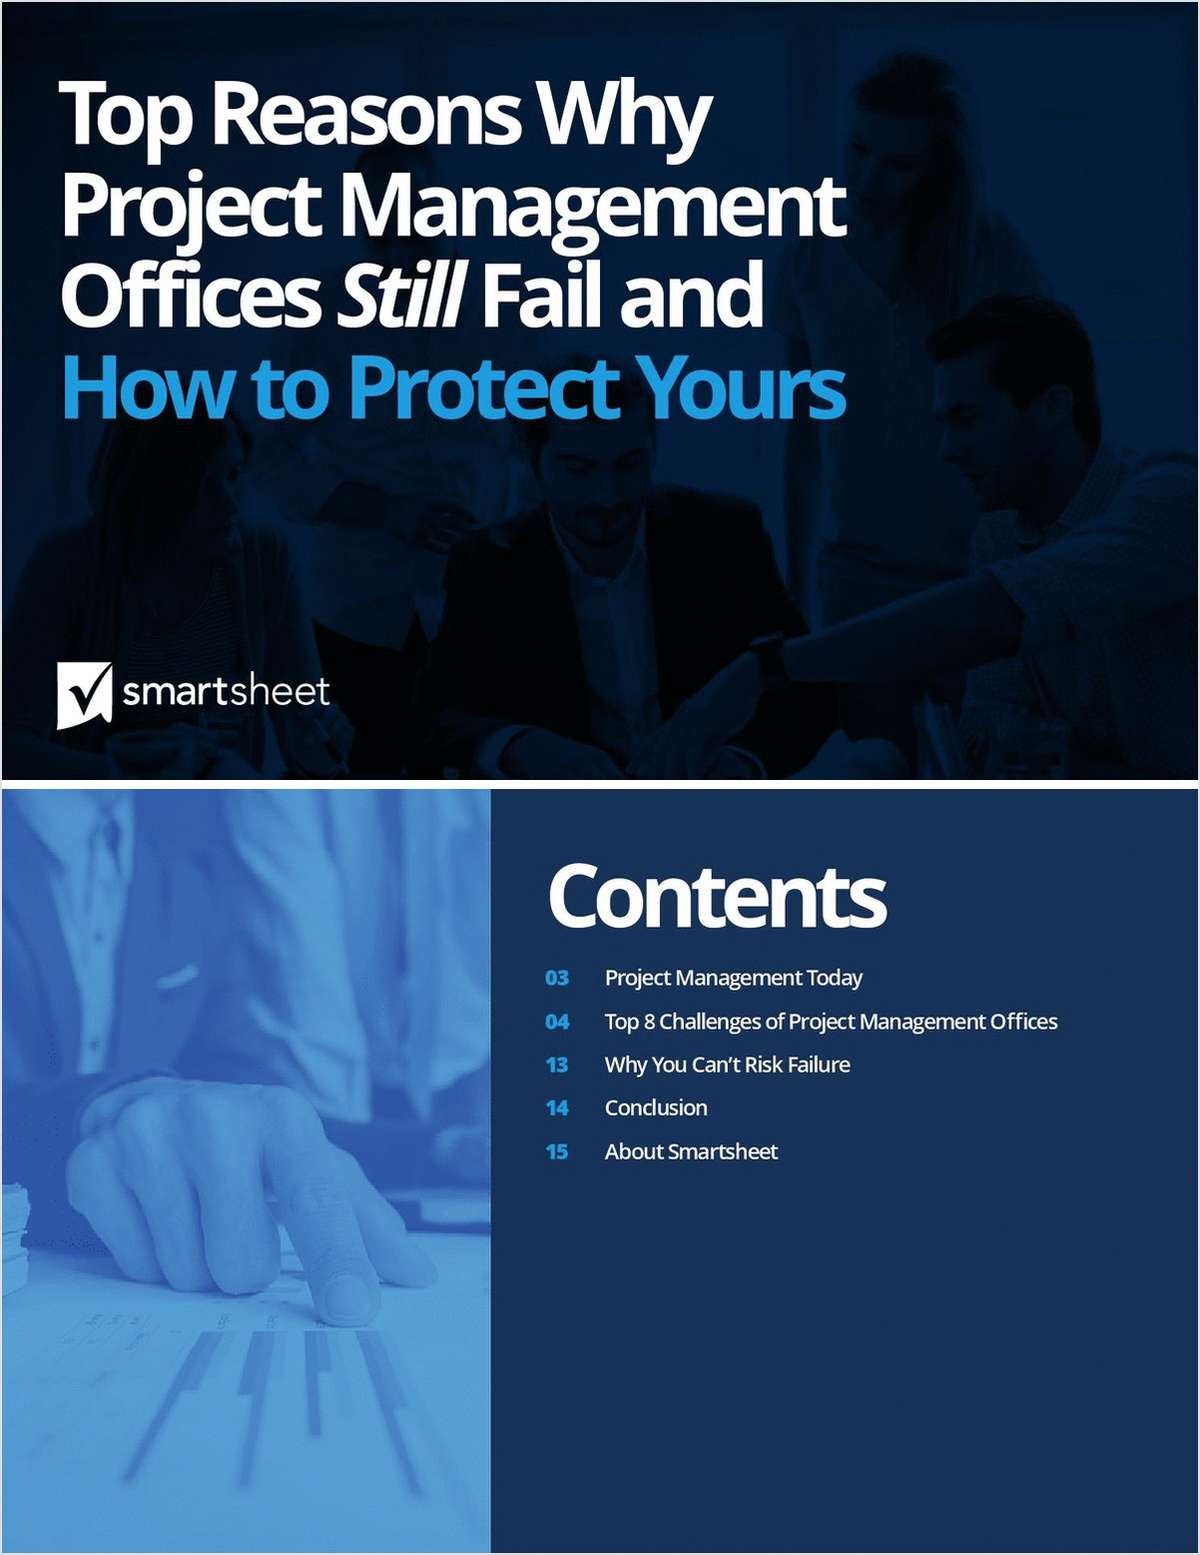 Top Reasons Why Project Management Offices Still Fail and How to Protect Yours